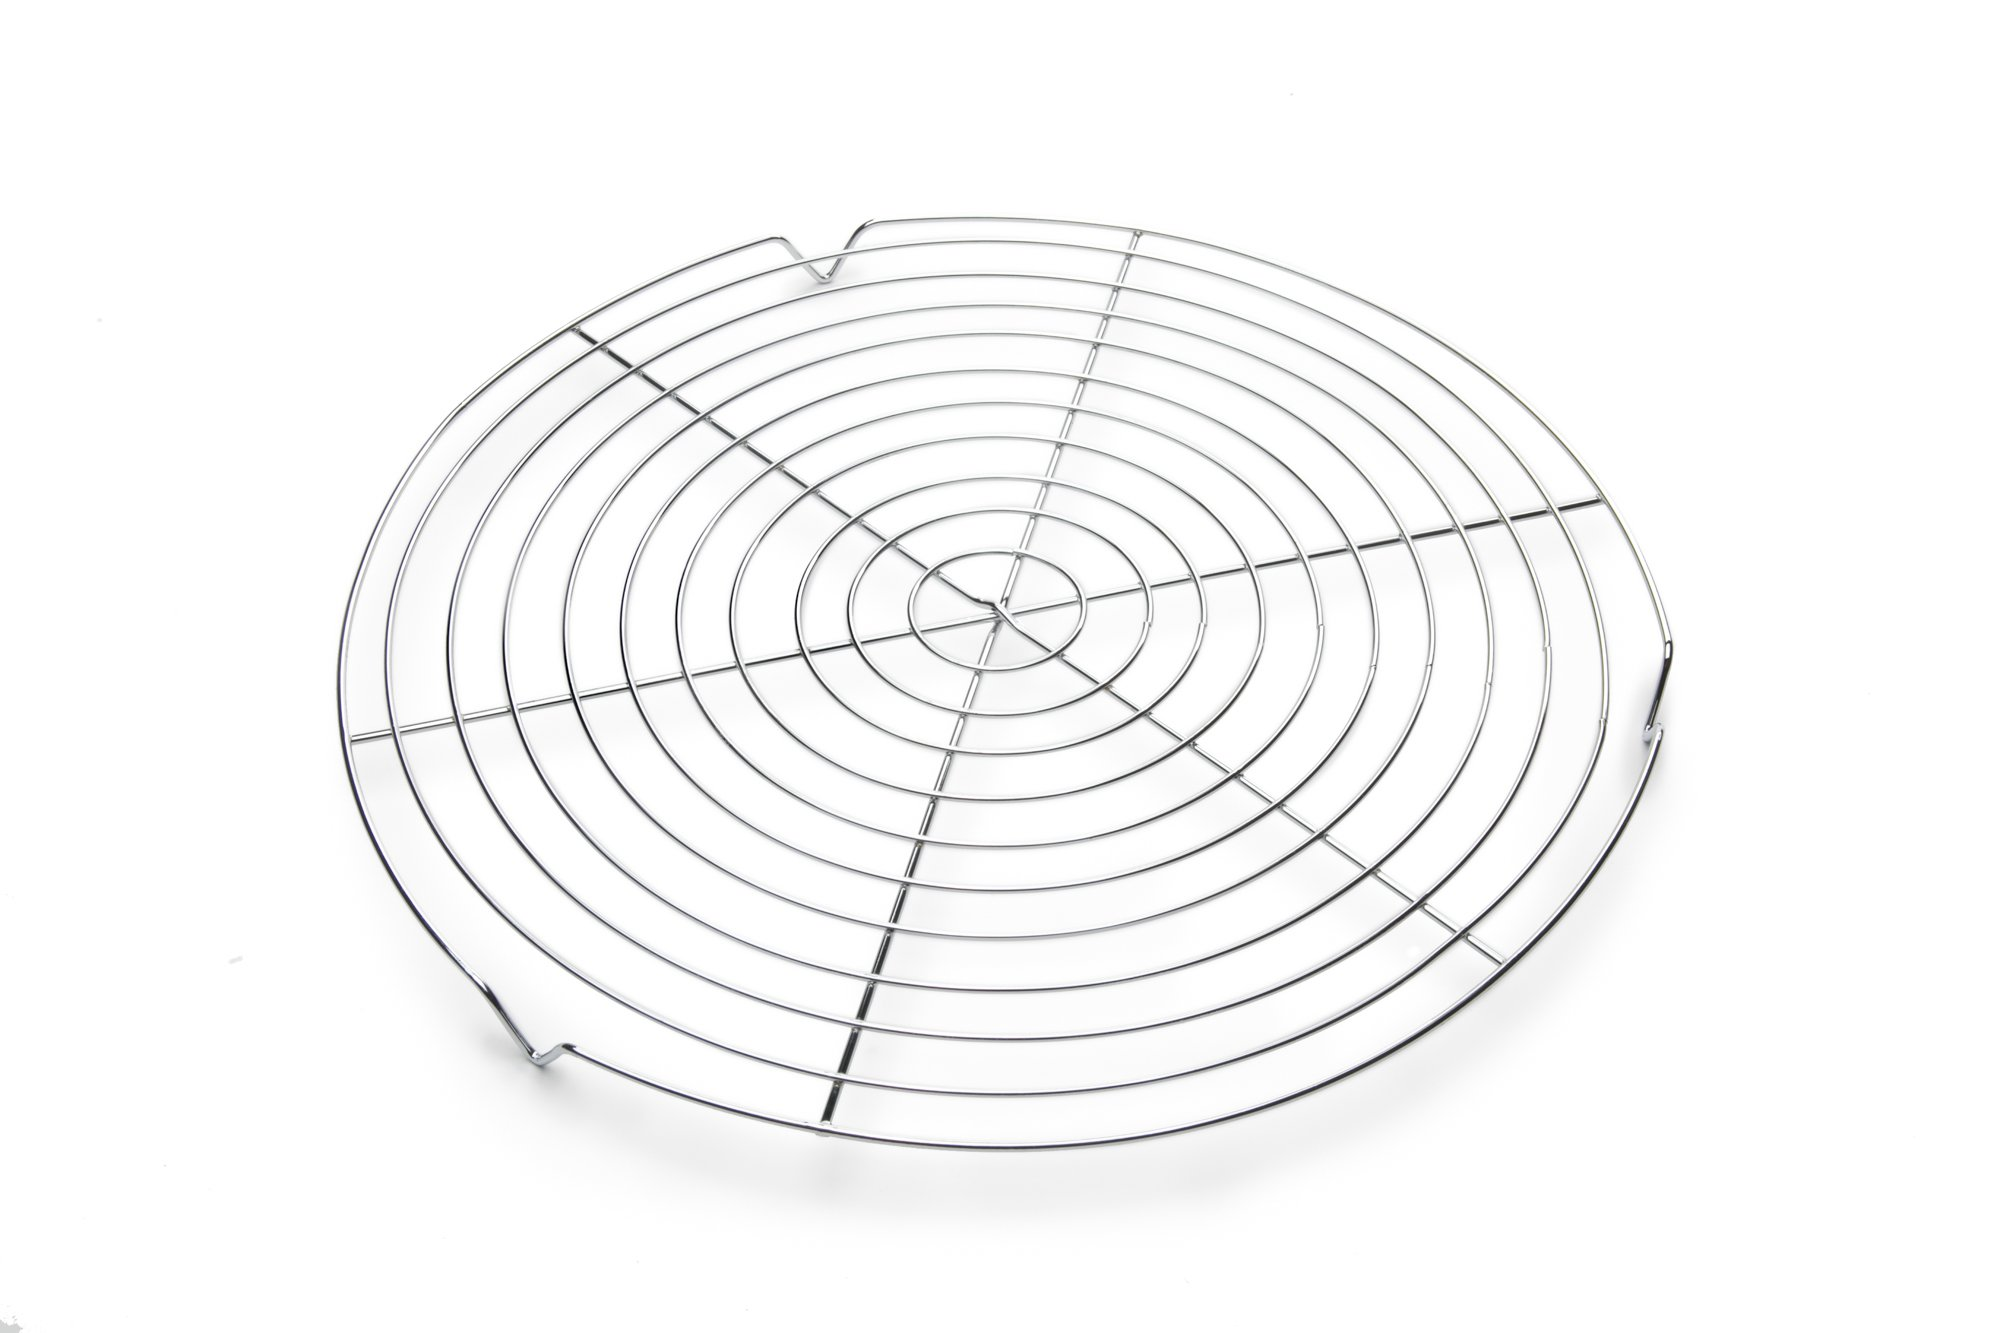 Fox Run 4689 Round Cooling Rack, Iron/Chrome, 13-Inch